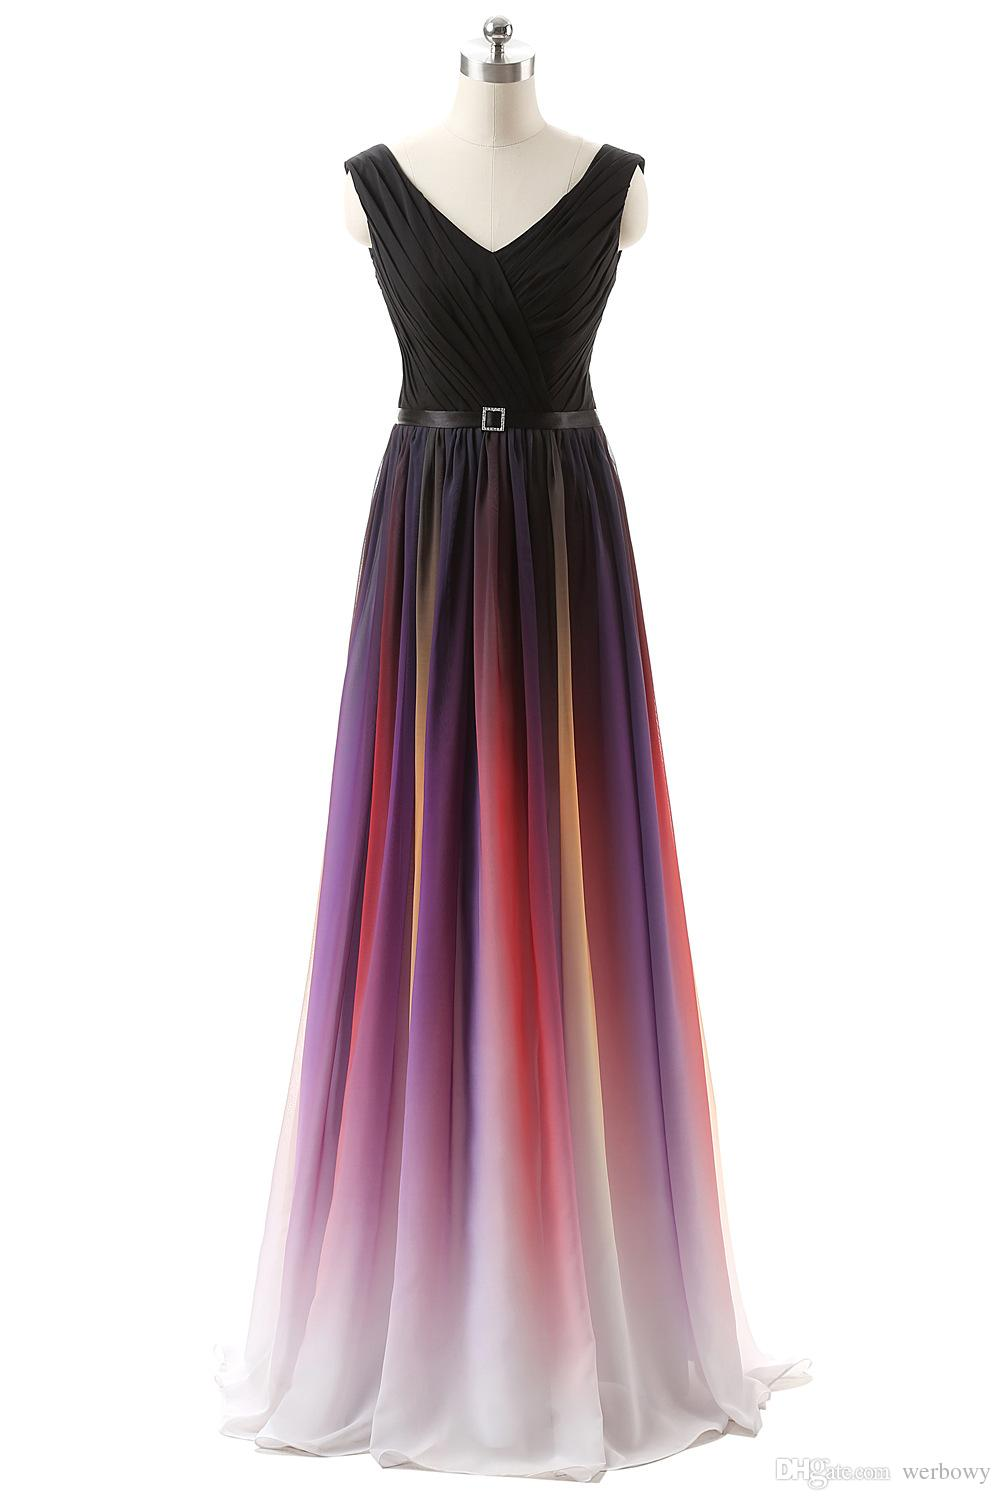 Cheap 2019 Elie Saab Evening Prom Dresses Belt Backless Gradient Color Black Chiffon Formal Occasion Party Gowns Real Photos Plus Size Sexy